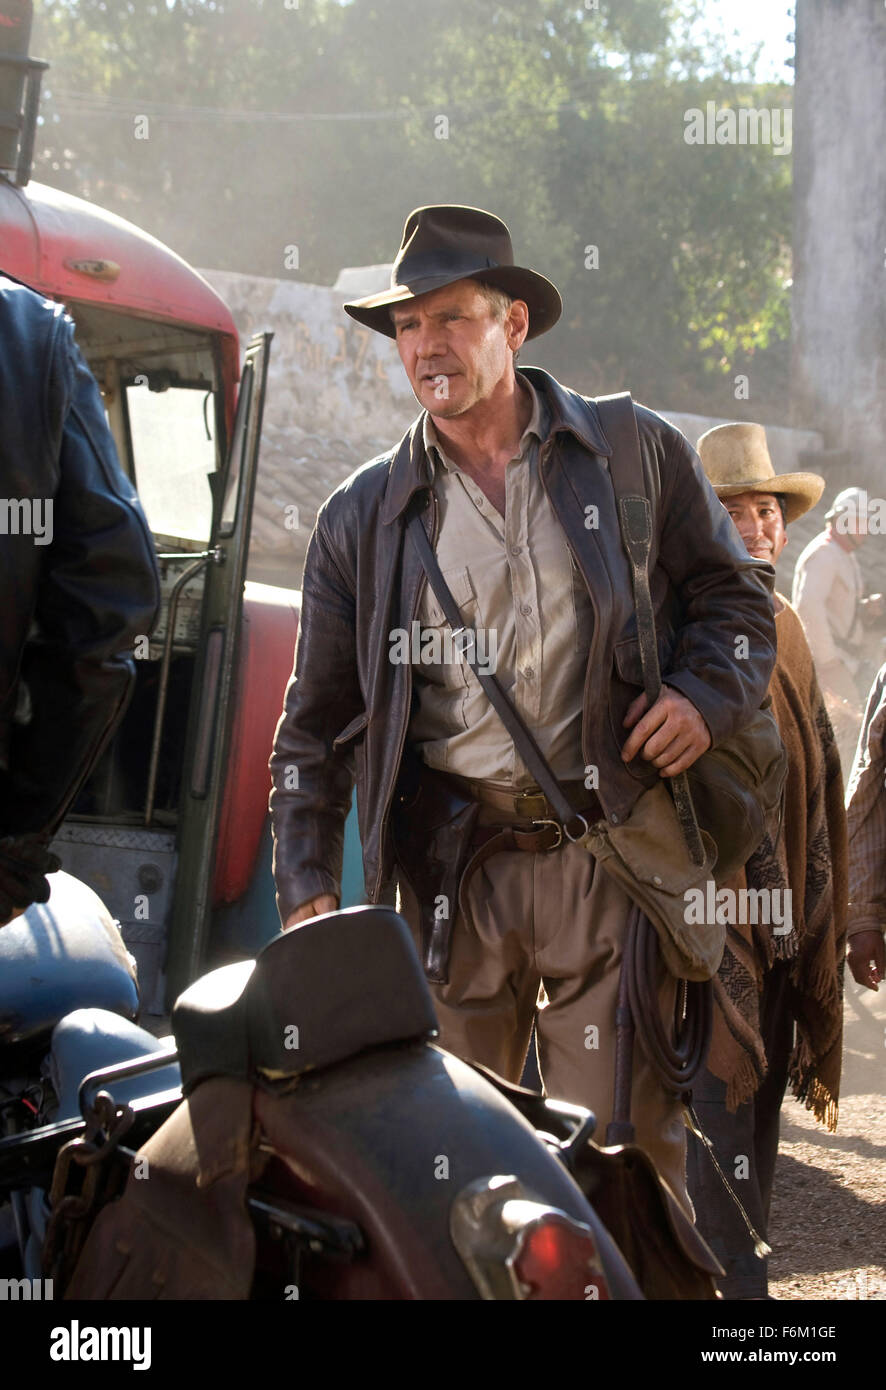 RELEASE DATE: May 22, 2008. MOVIE TITLE: Indiana Jones and ...